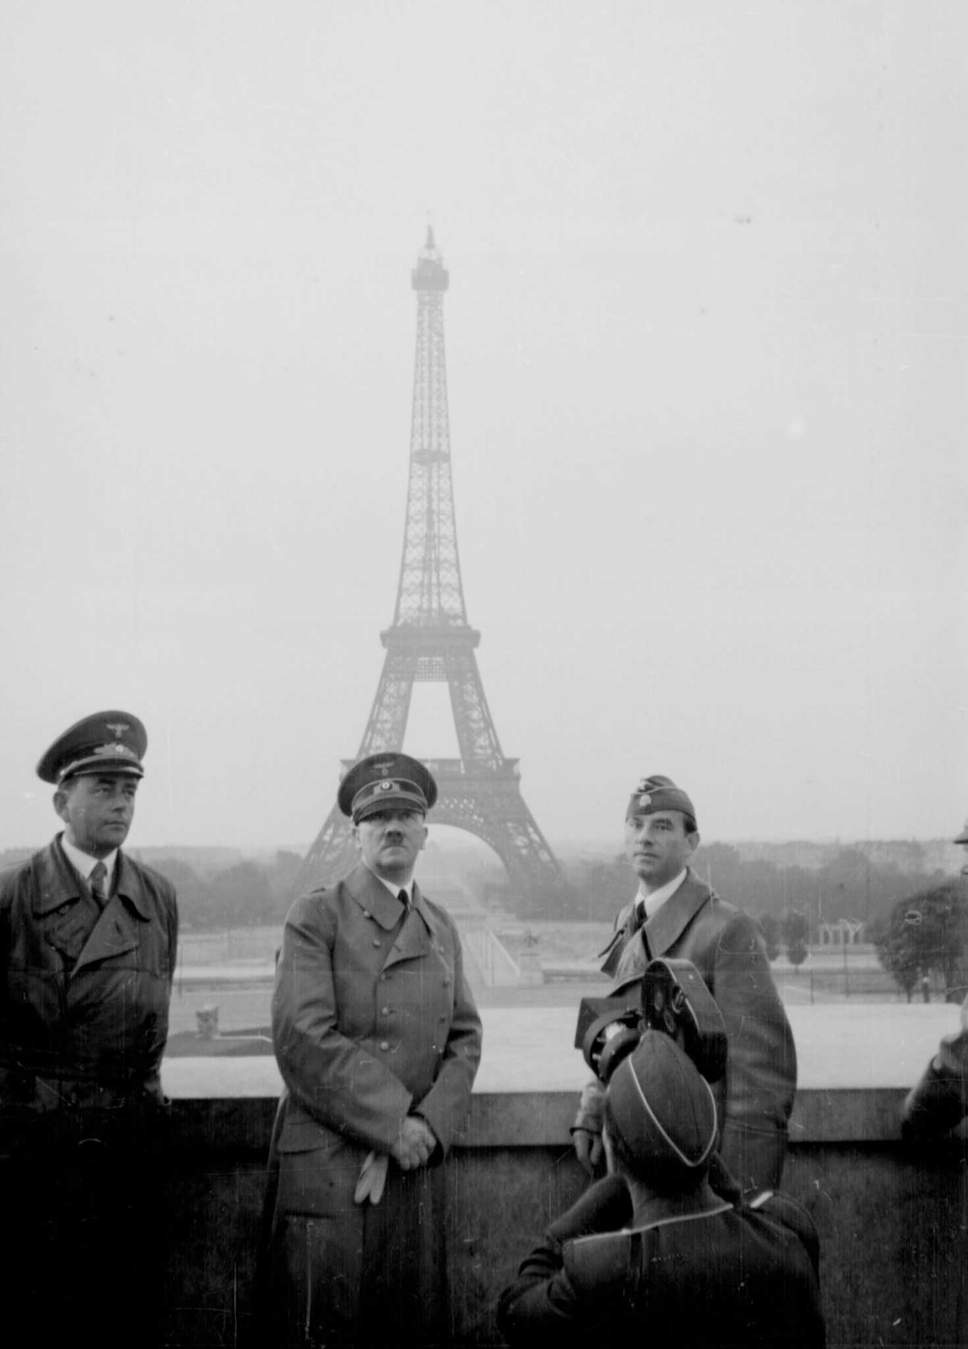 The Storm over Paris - William Grubman - The Nazi Occupation of Paris